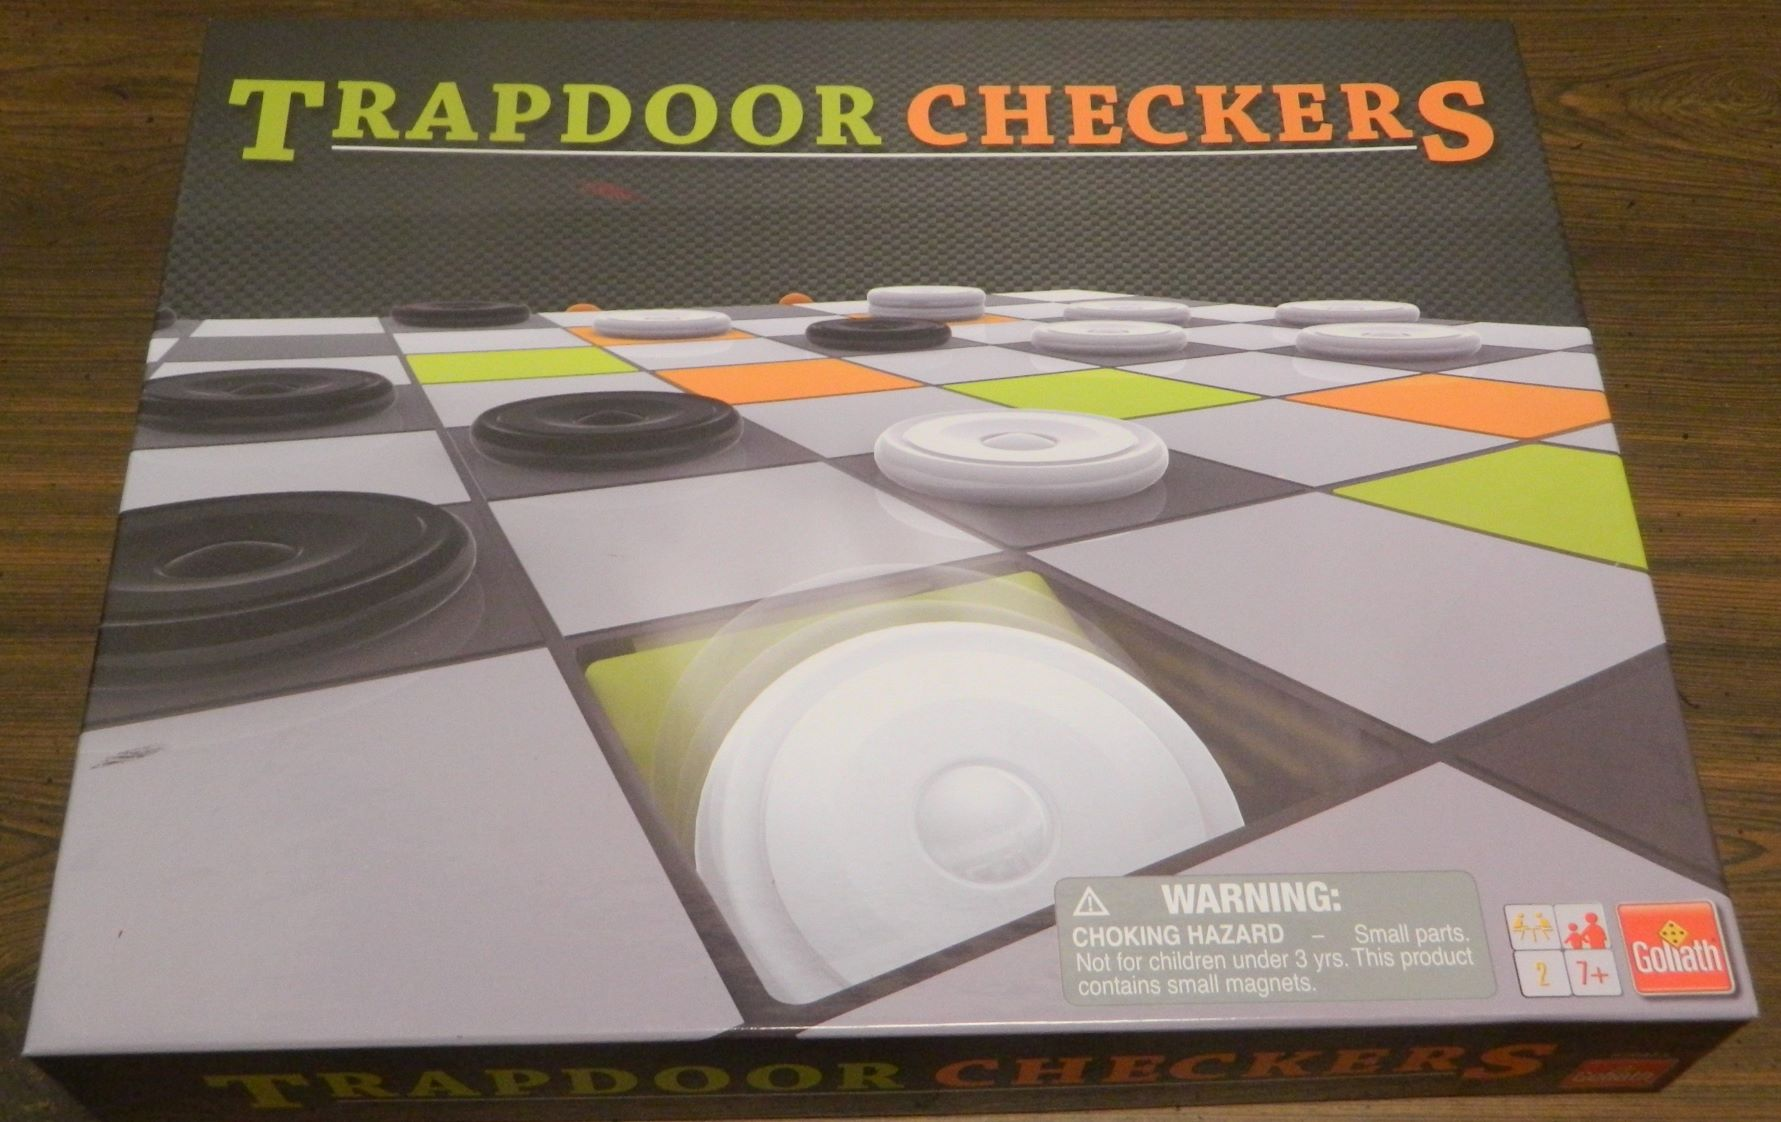 Box for Trapdoor Checkers